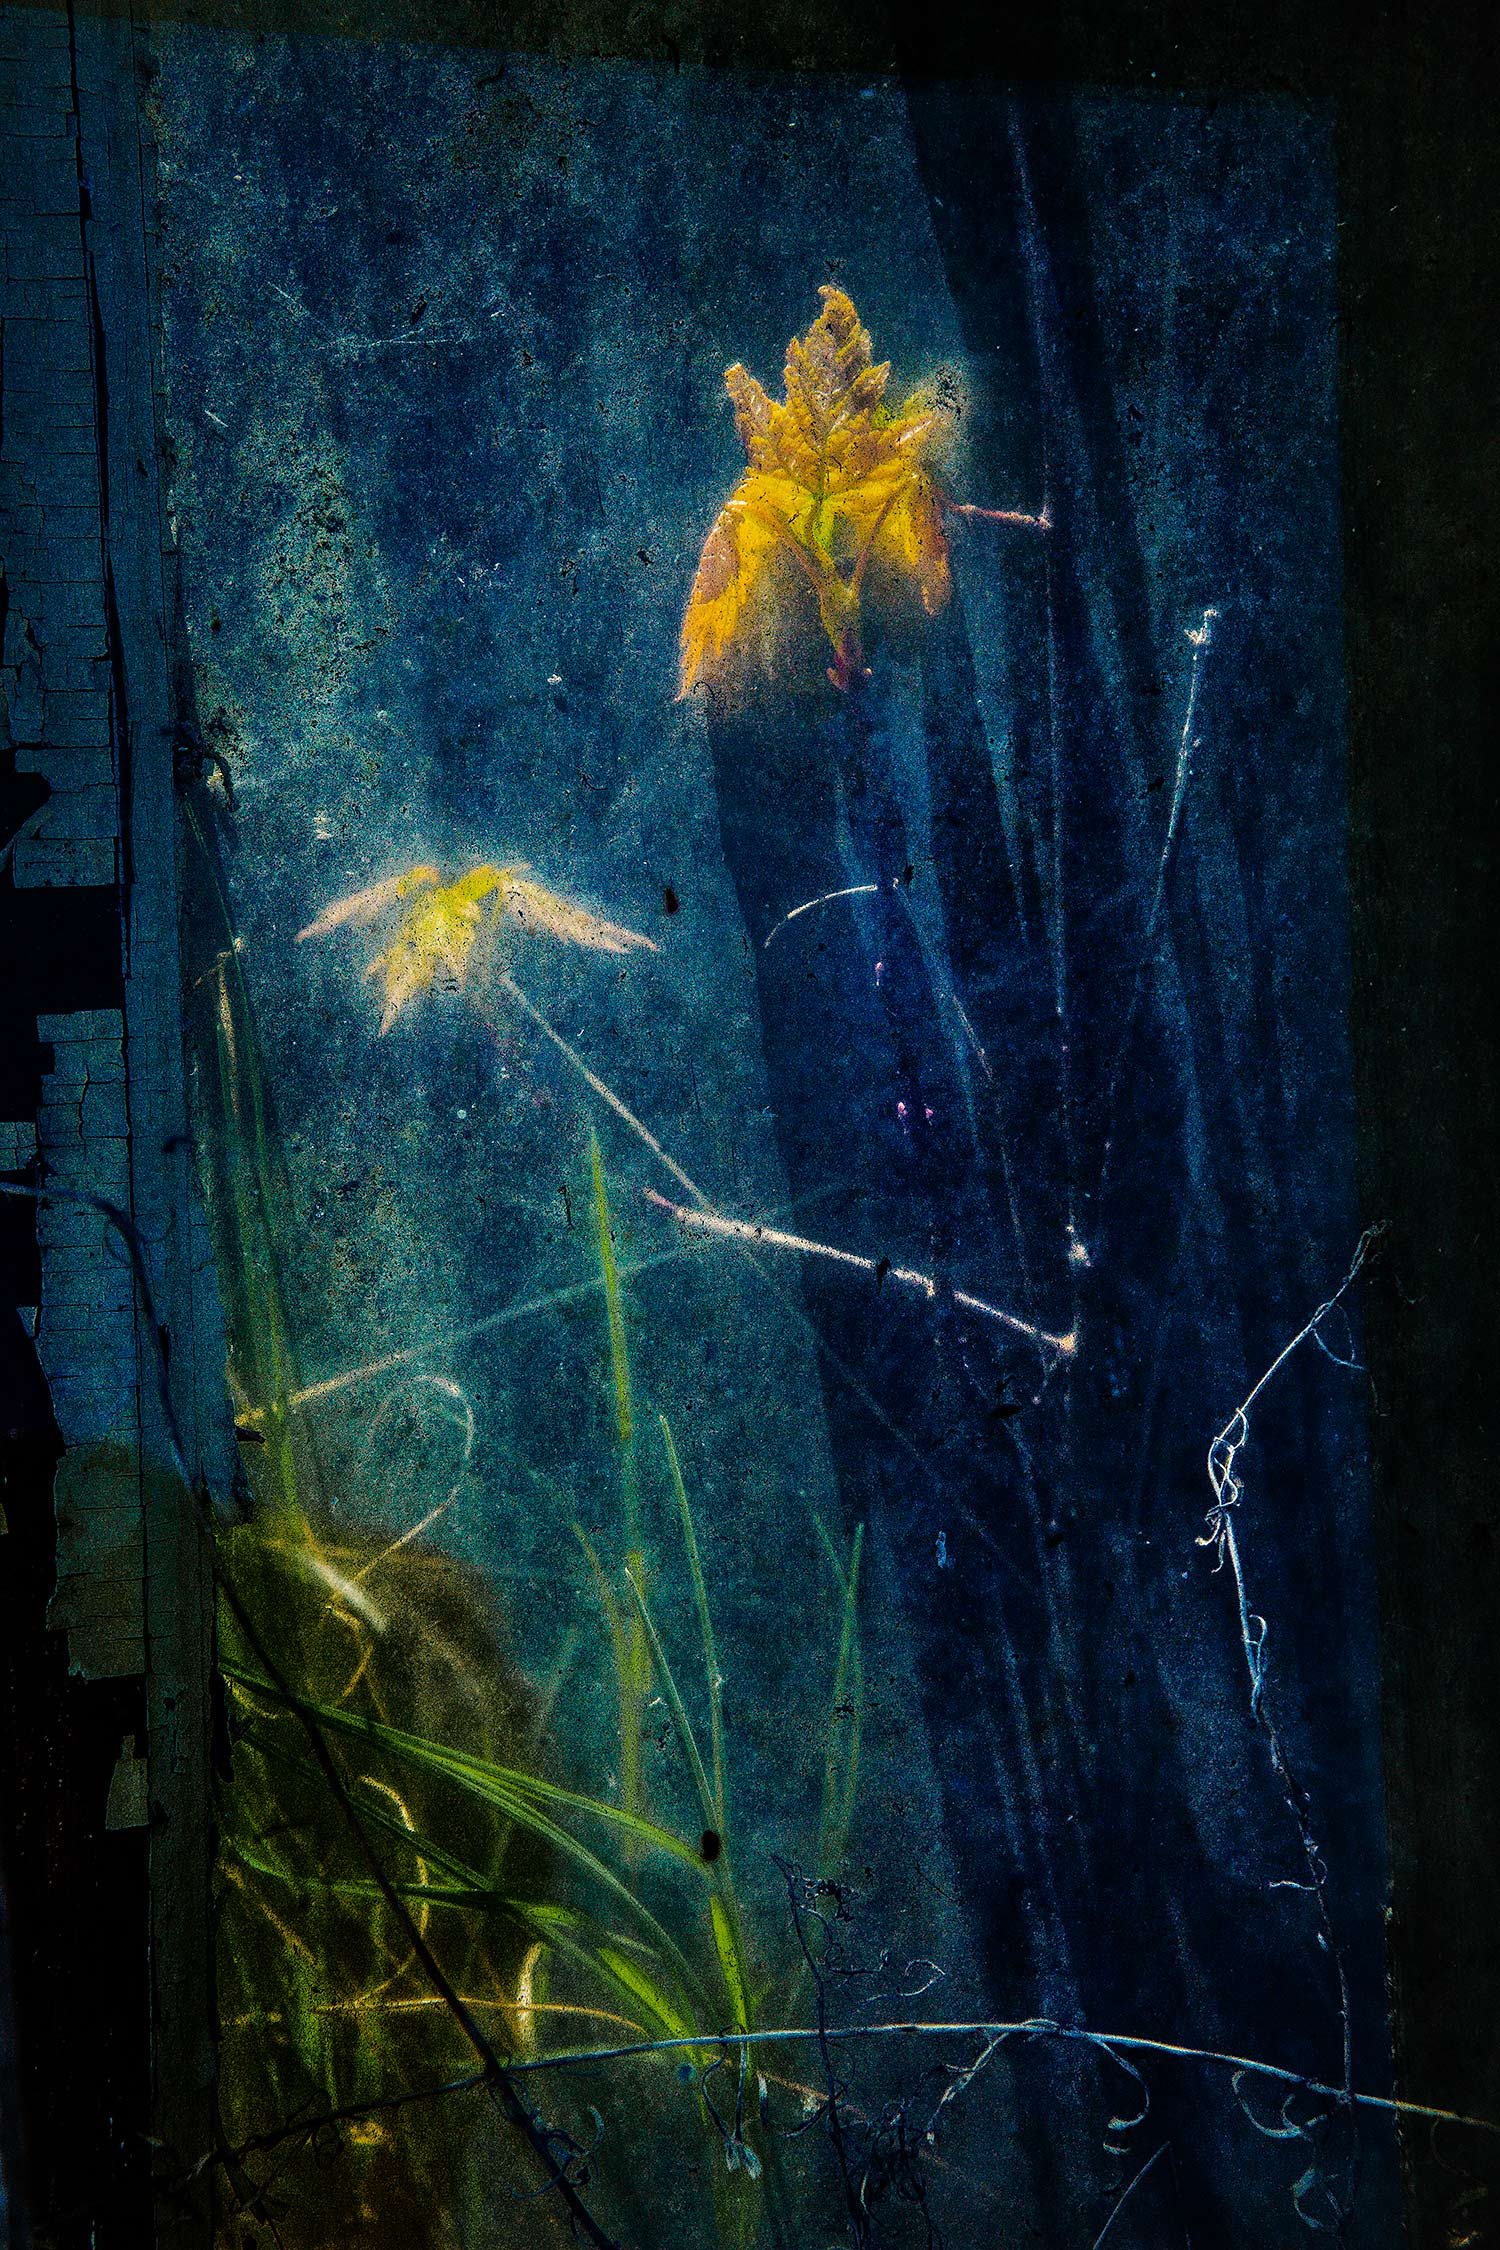 Weeds and Glass, Bar Harbor, Maine, 2010